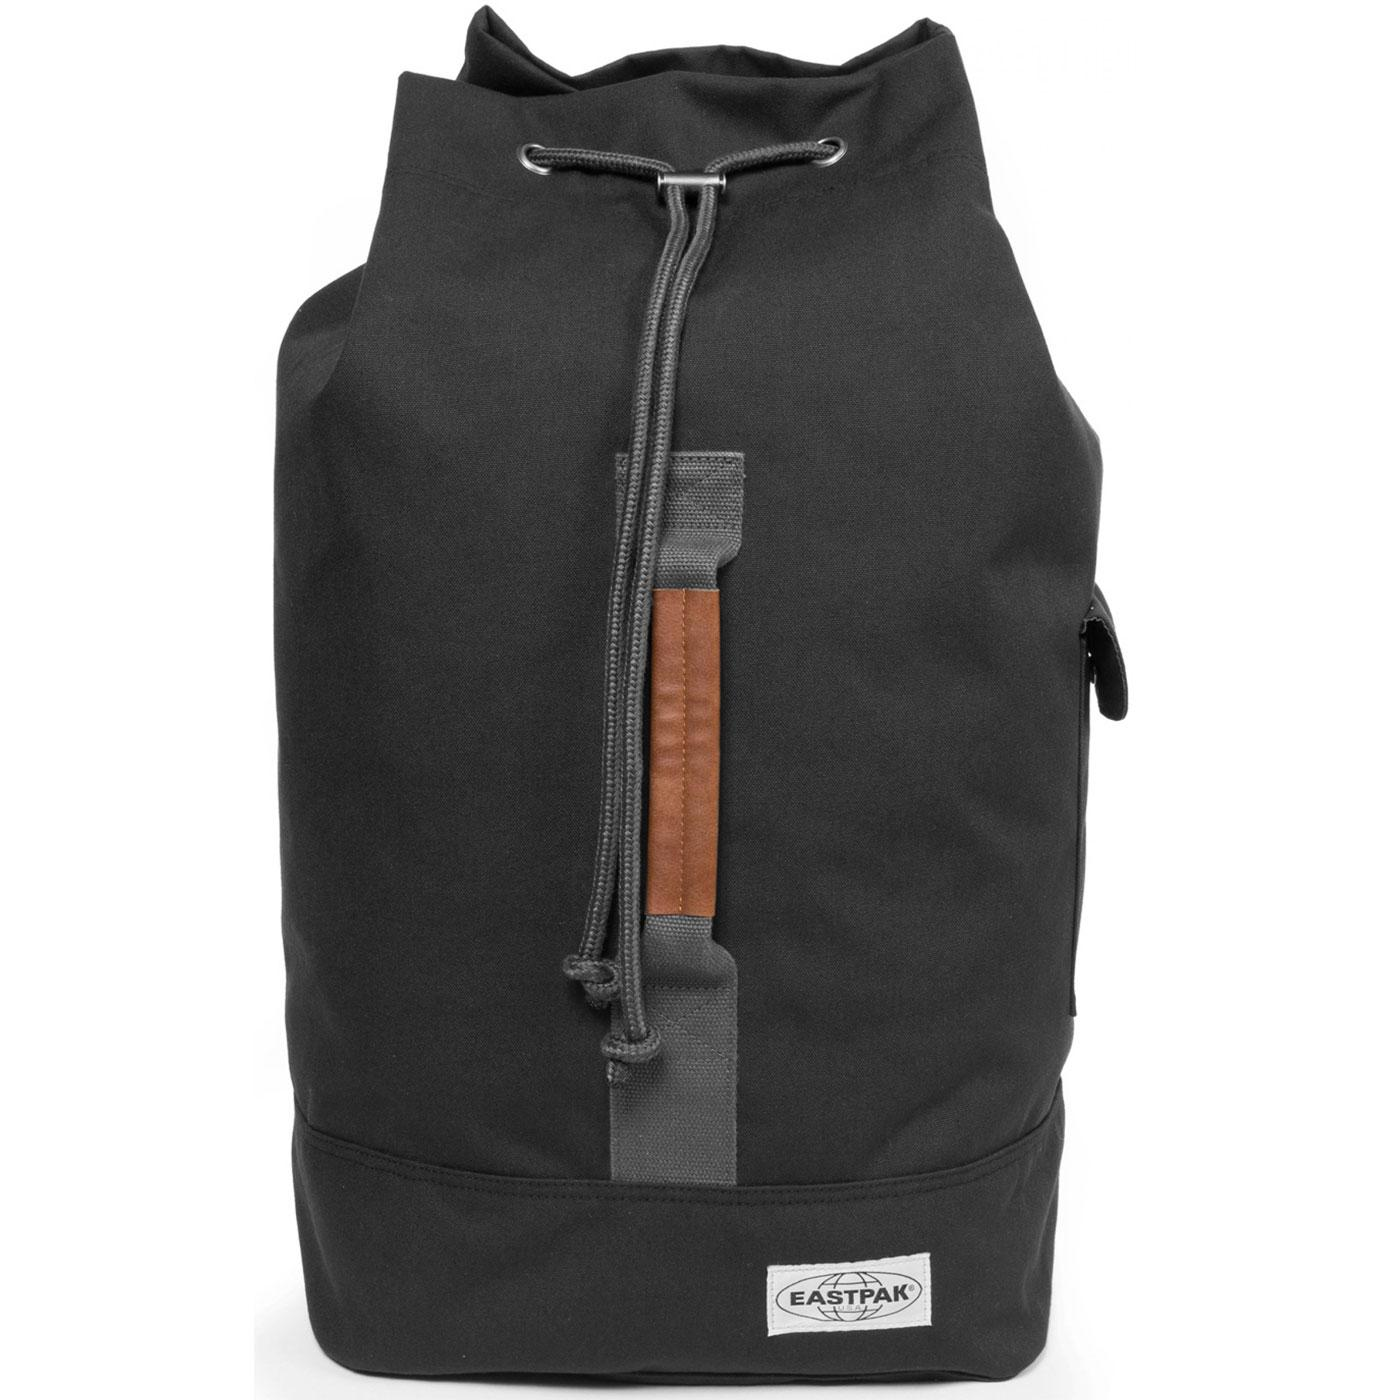 EASTPAK Plister Authentic Military Duffle Bag (OD)